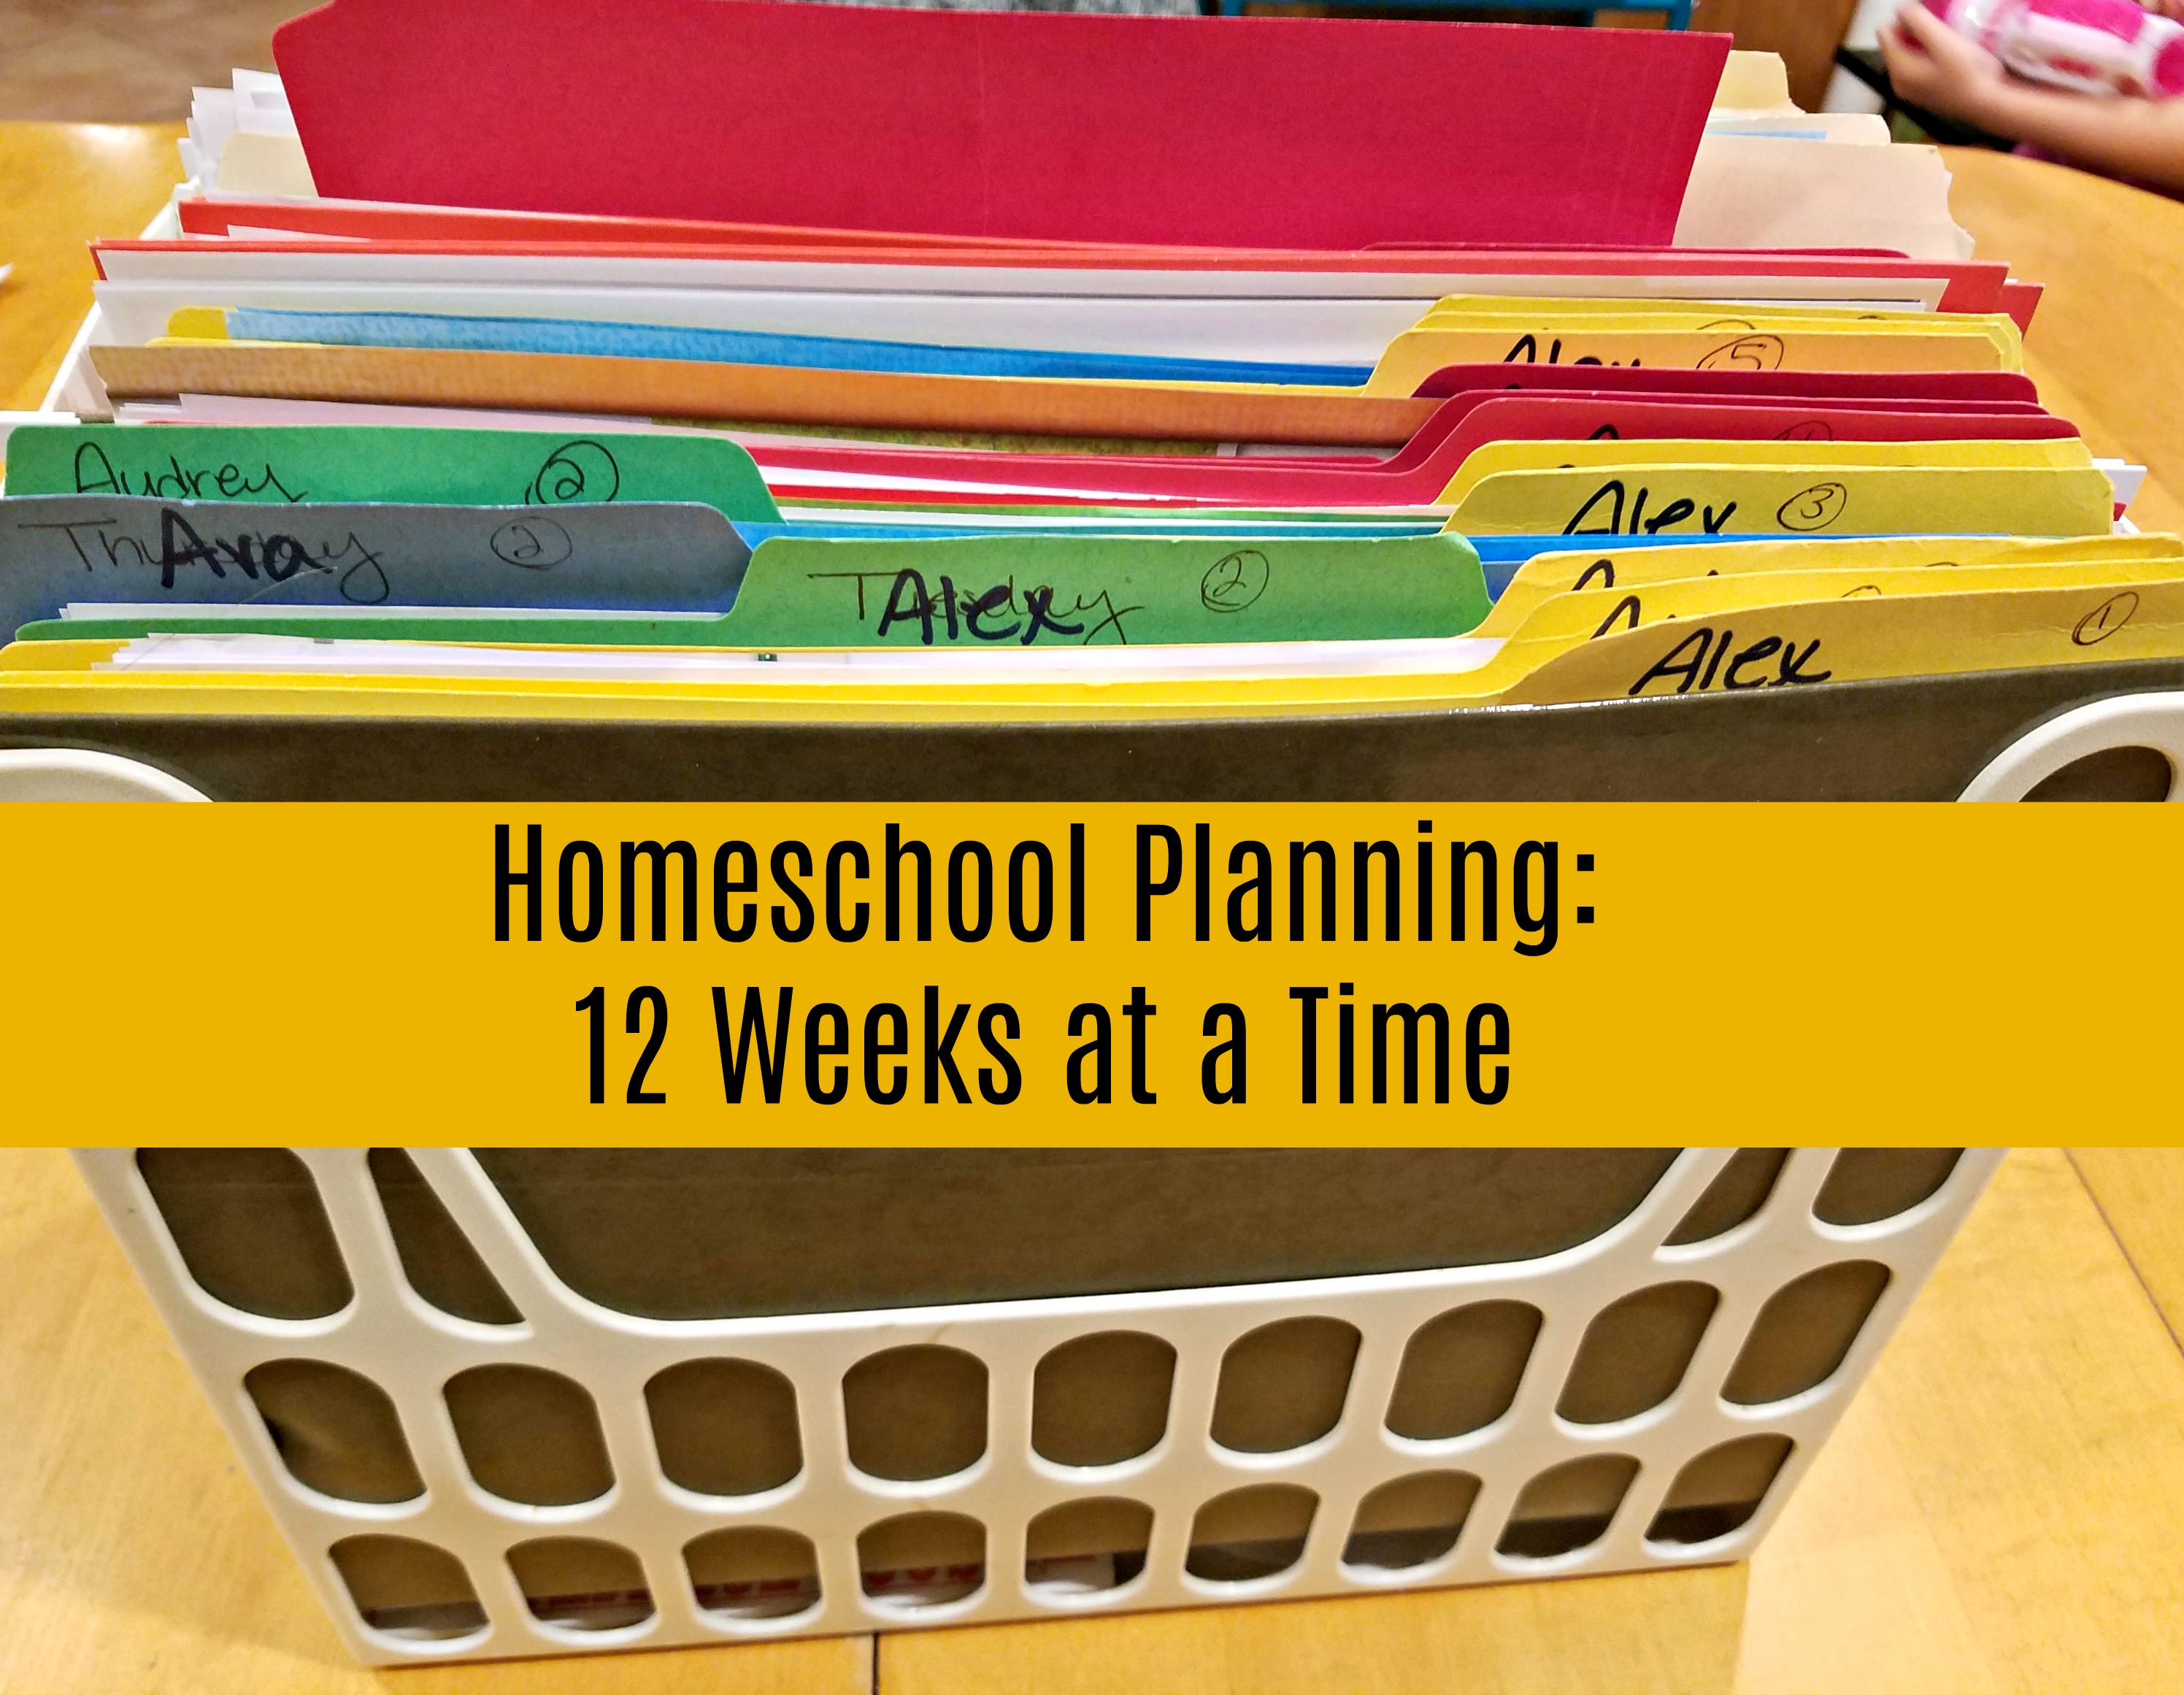 Homeschool Planning Prepping 12 Weeks At A Time